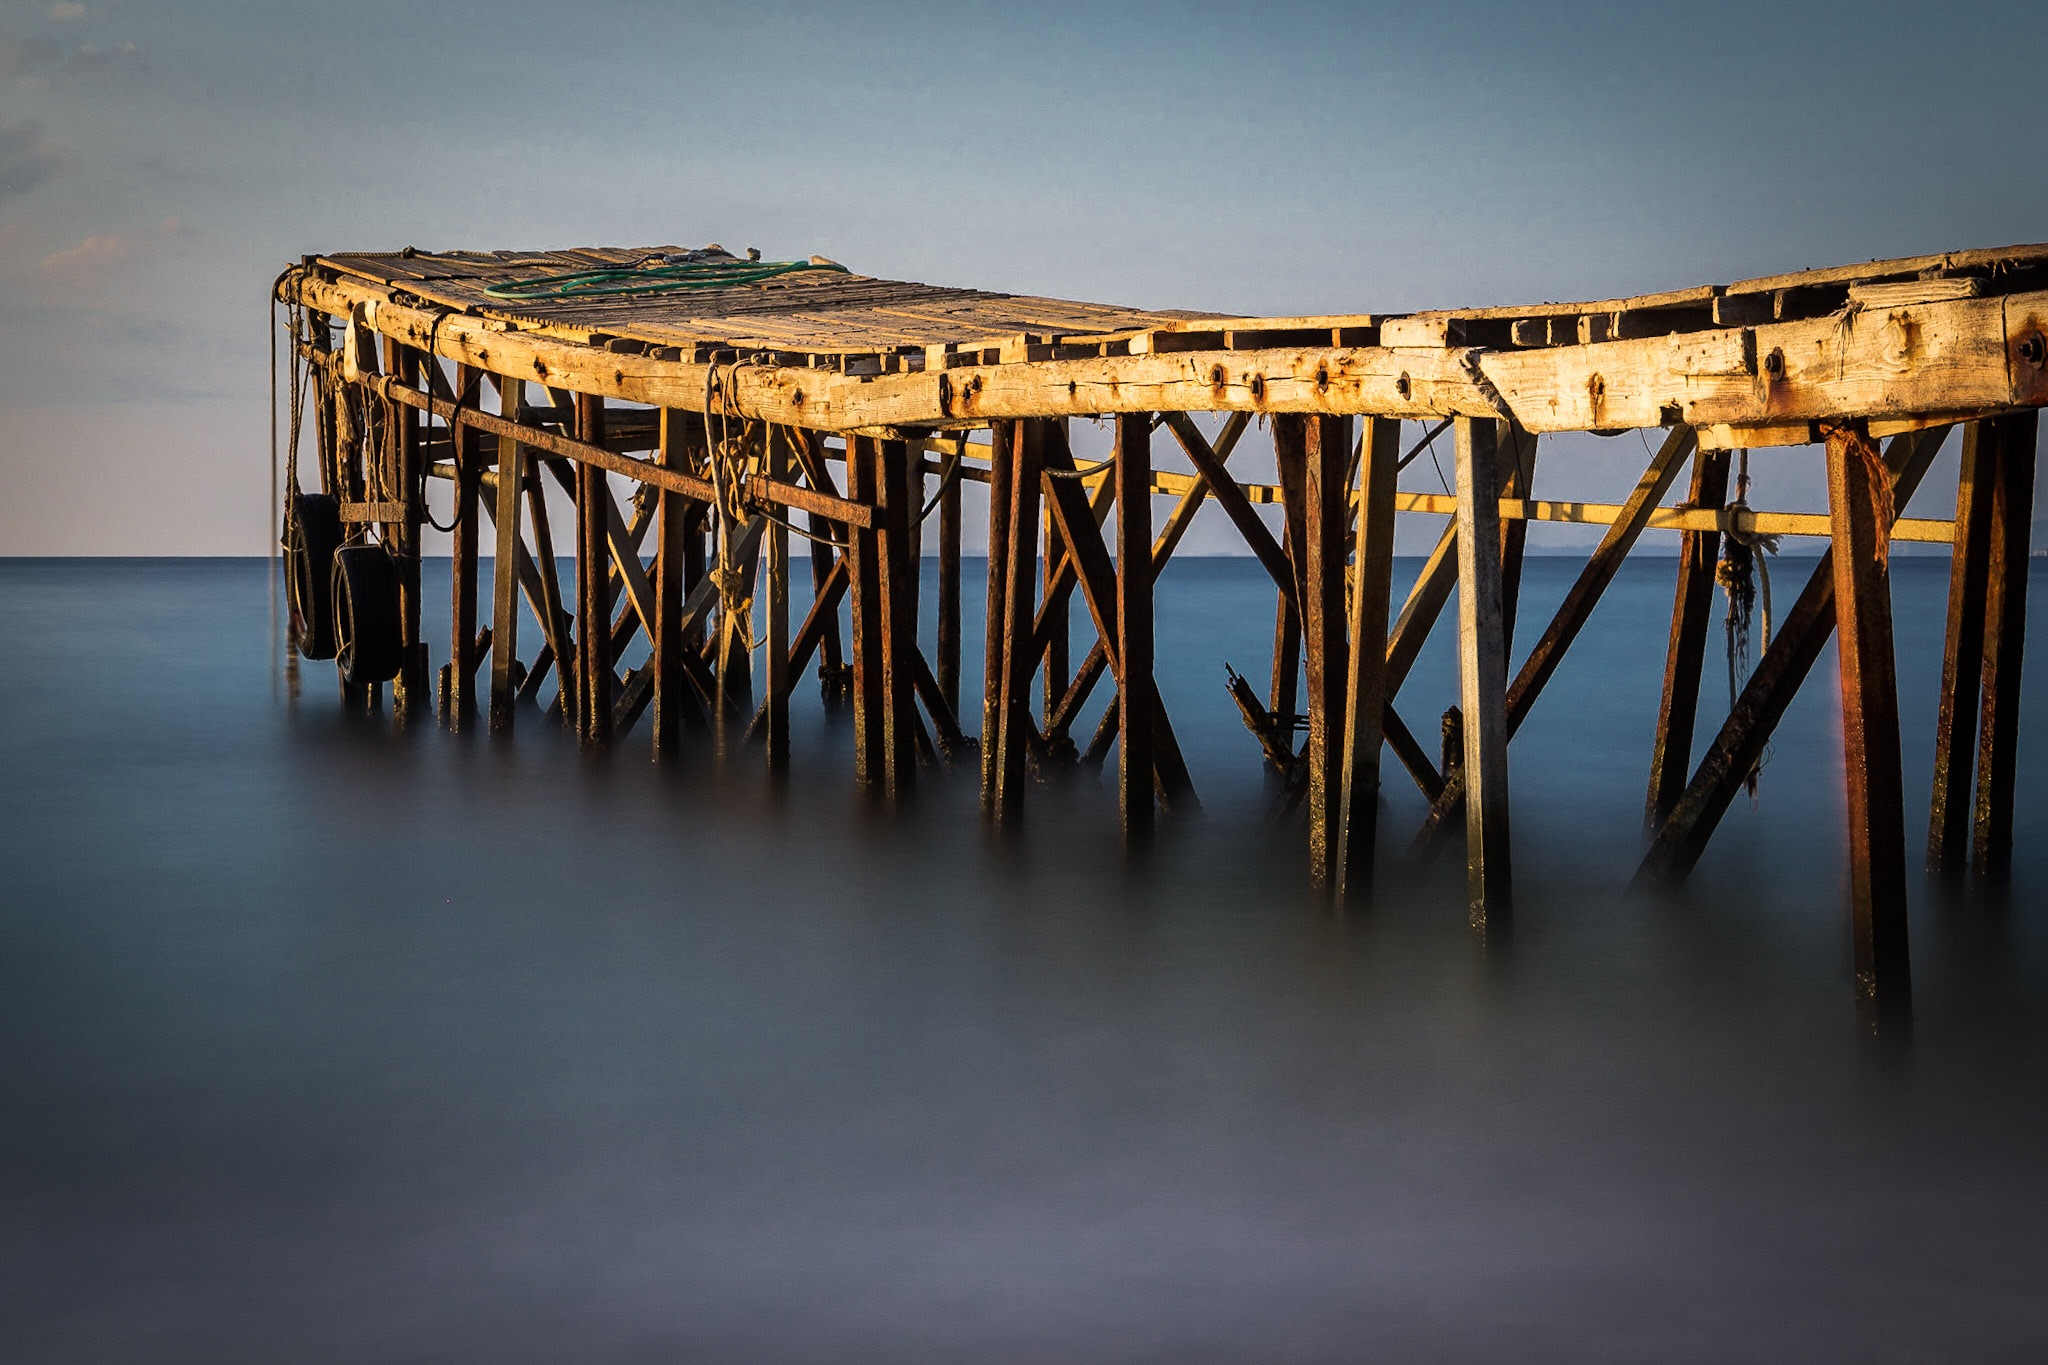 Jetty. Fine art landscape photography.